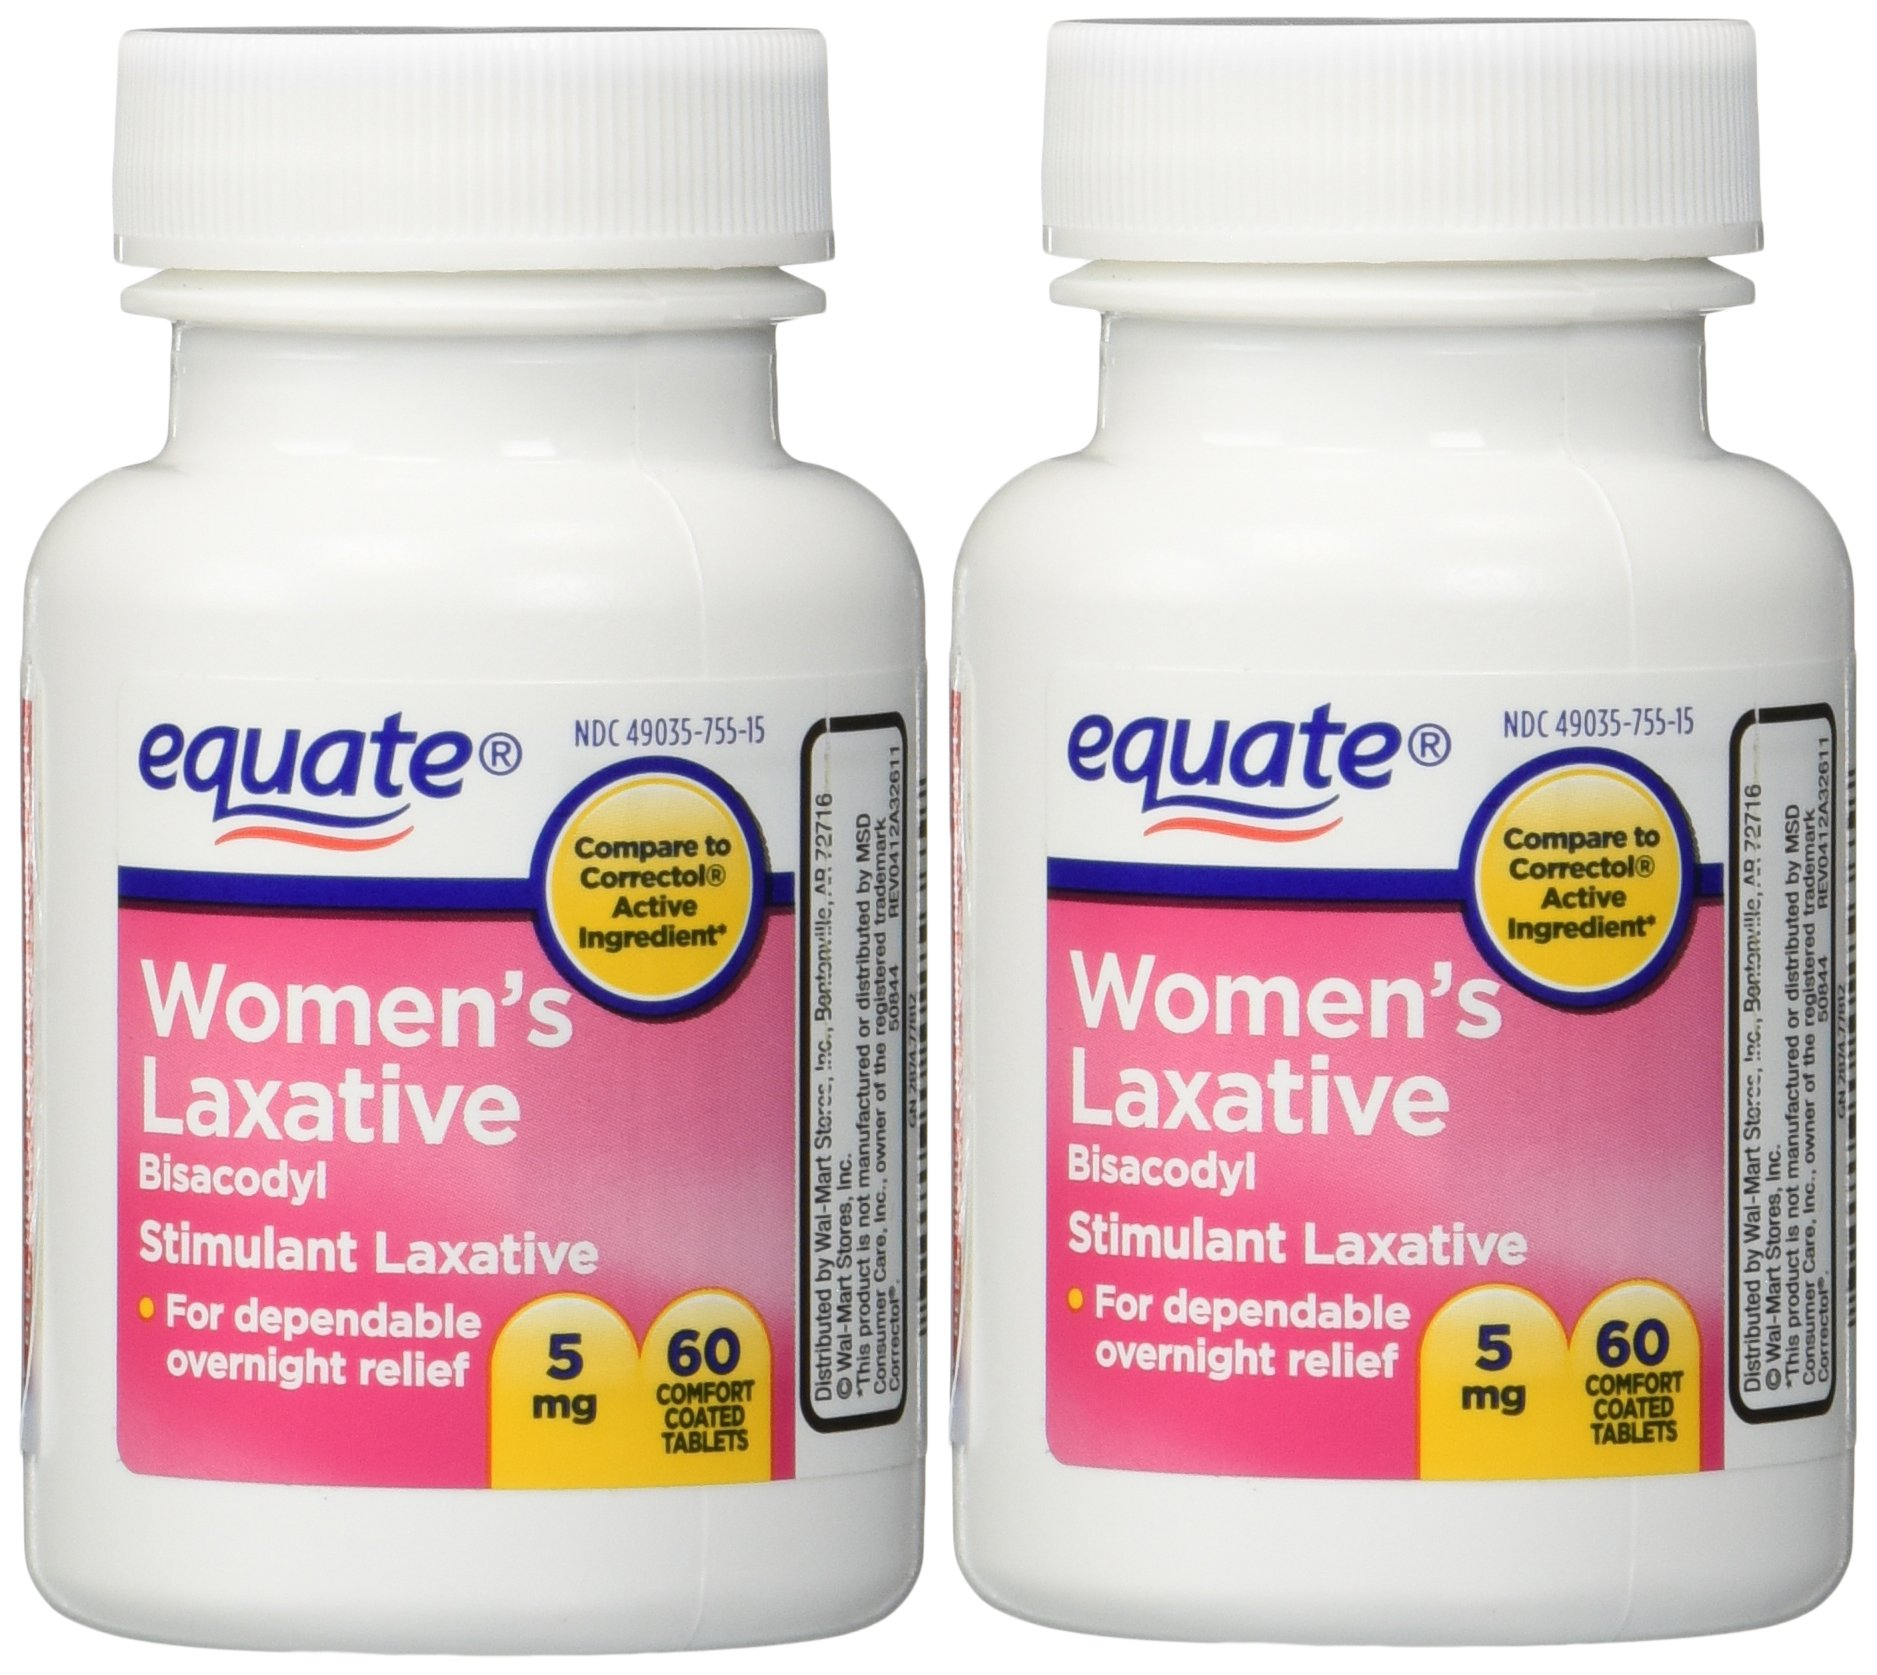 Women's Laxative Tablets, Bisacodyl 5mg 120ct (Two 60ct bottles) by Equate Compare to Correctol